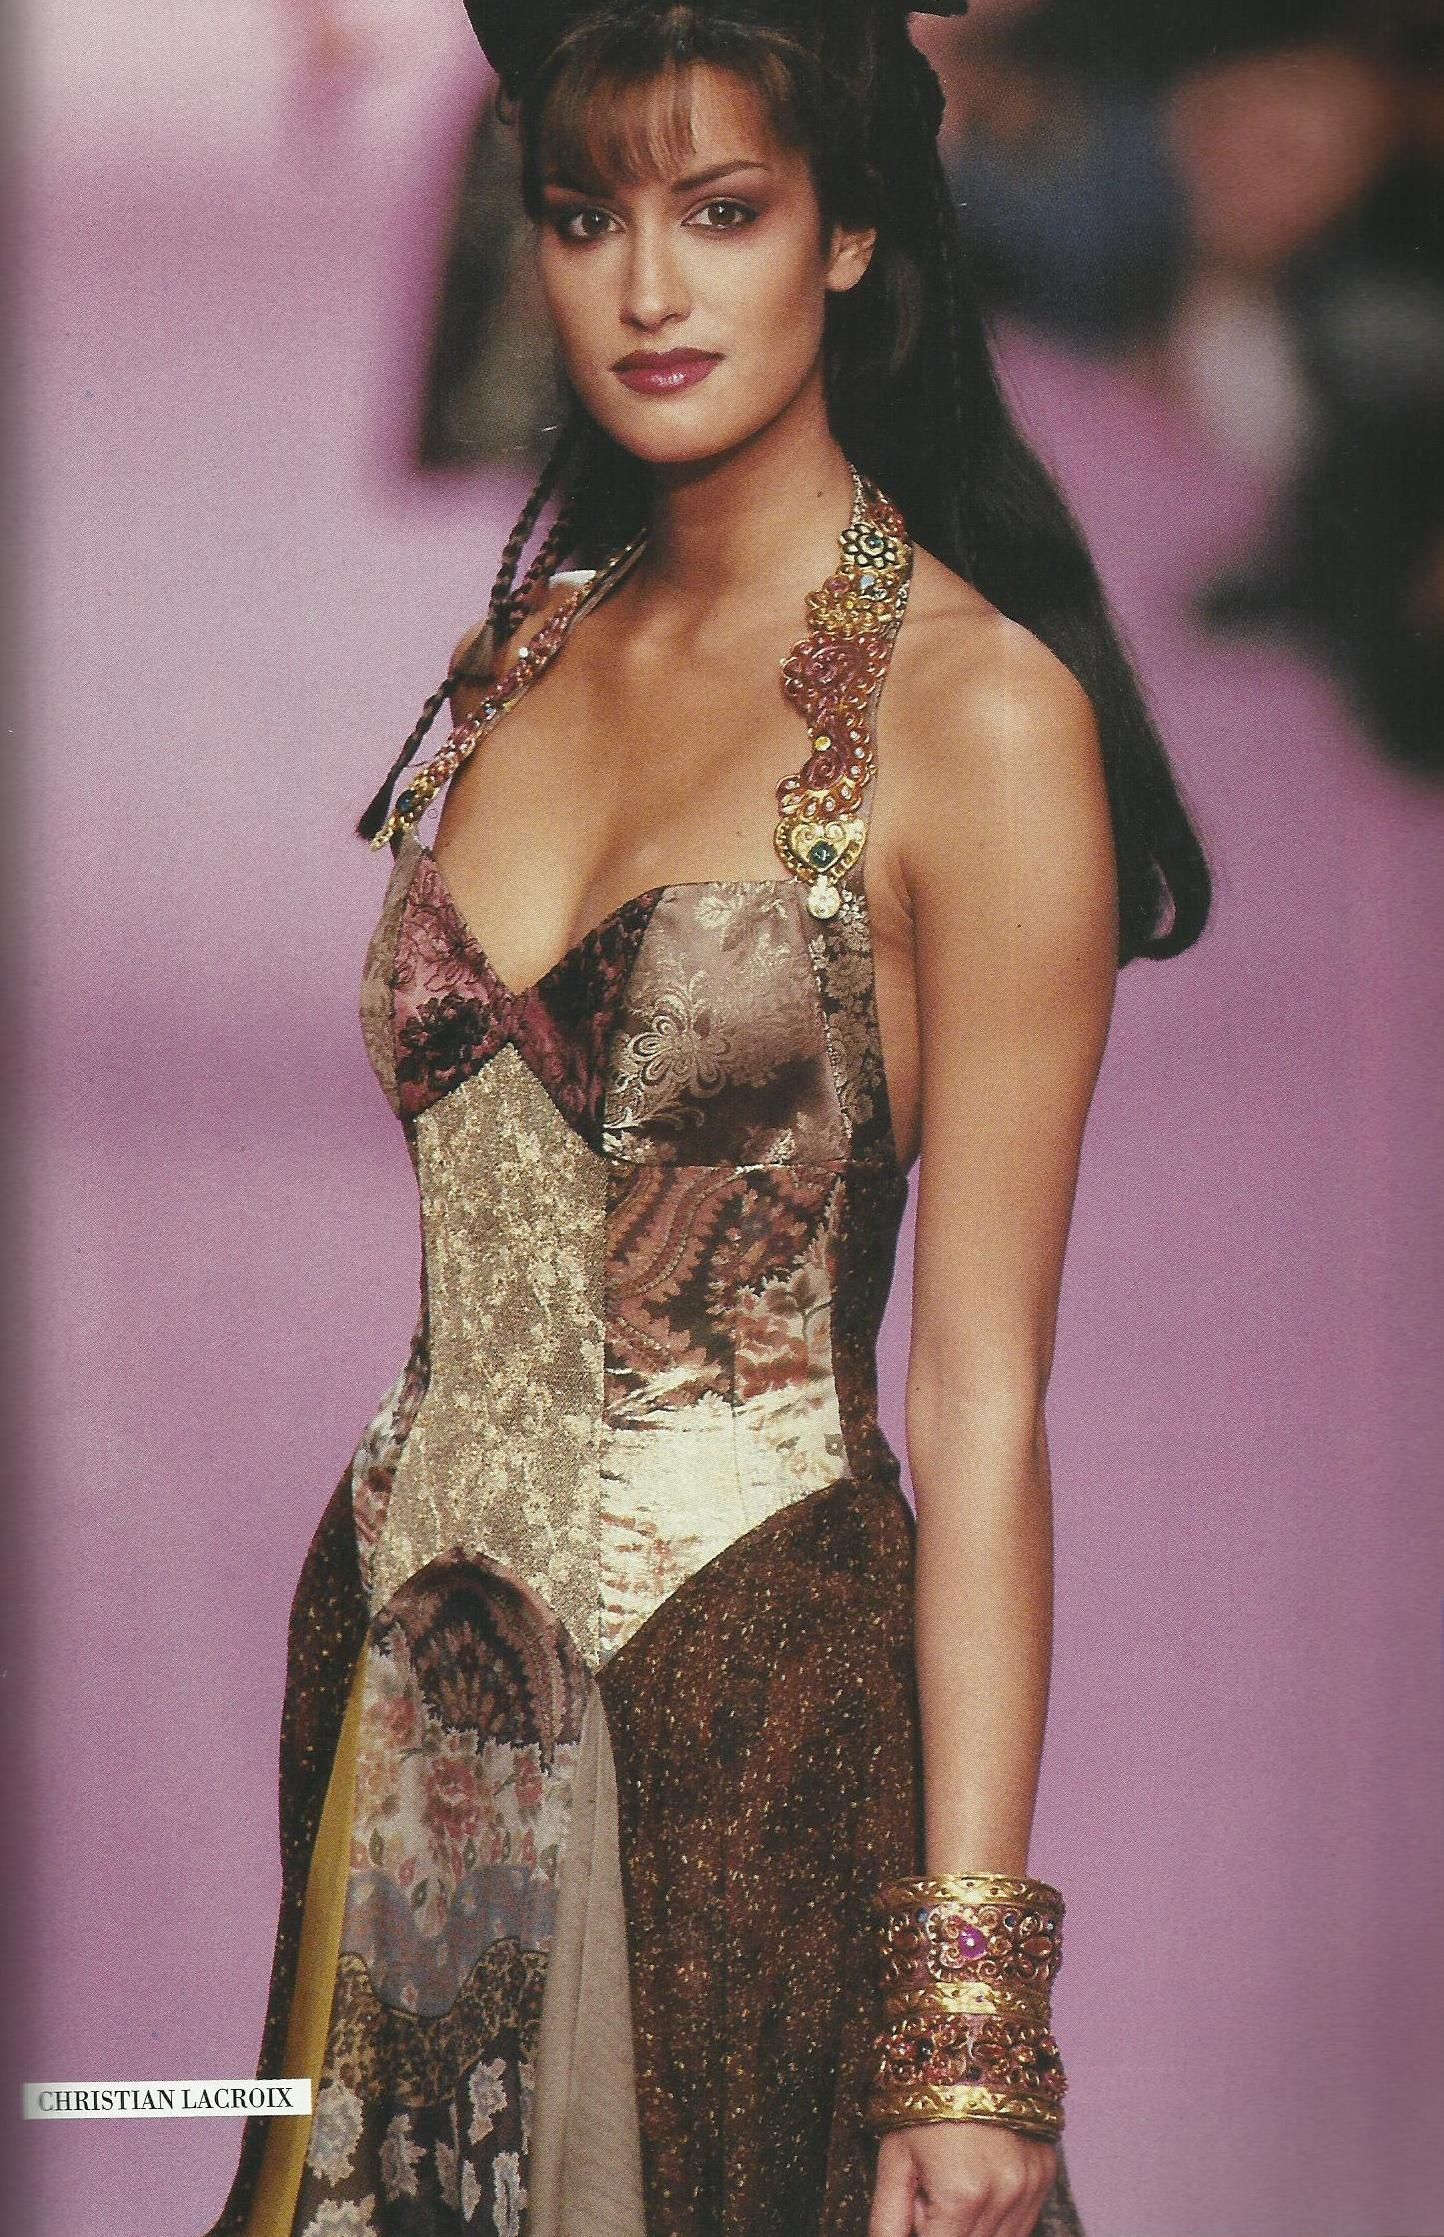 Yasmeen Ghauri Christian Lacriox High Fashion Looks Fashion Clothes Women Fashion